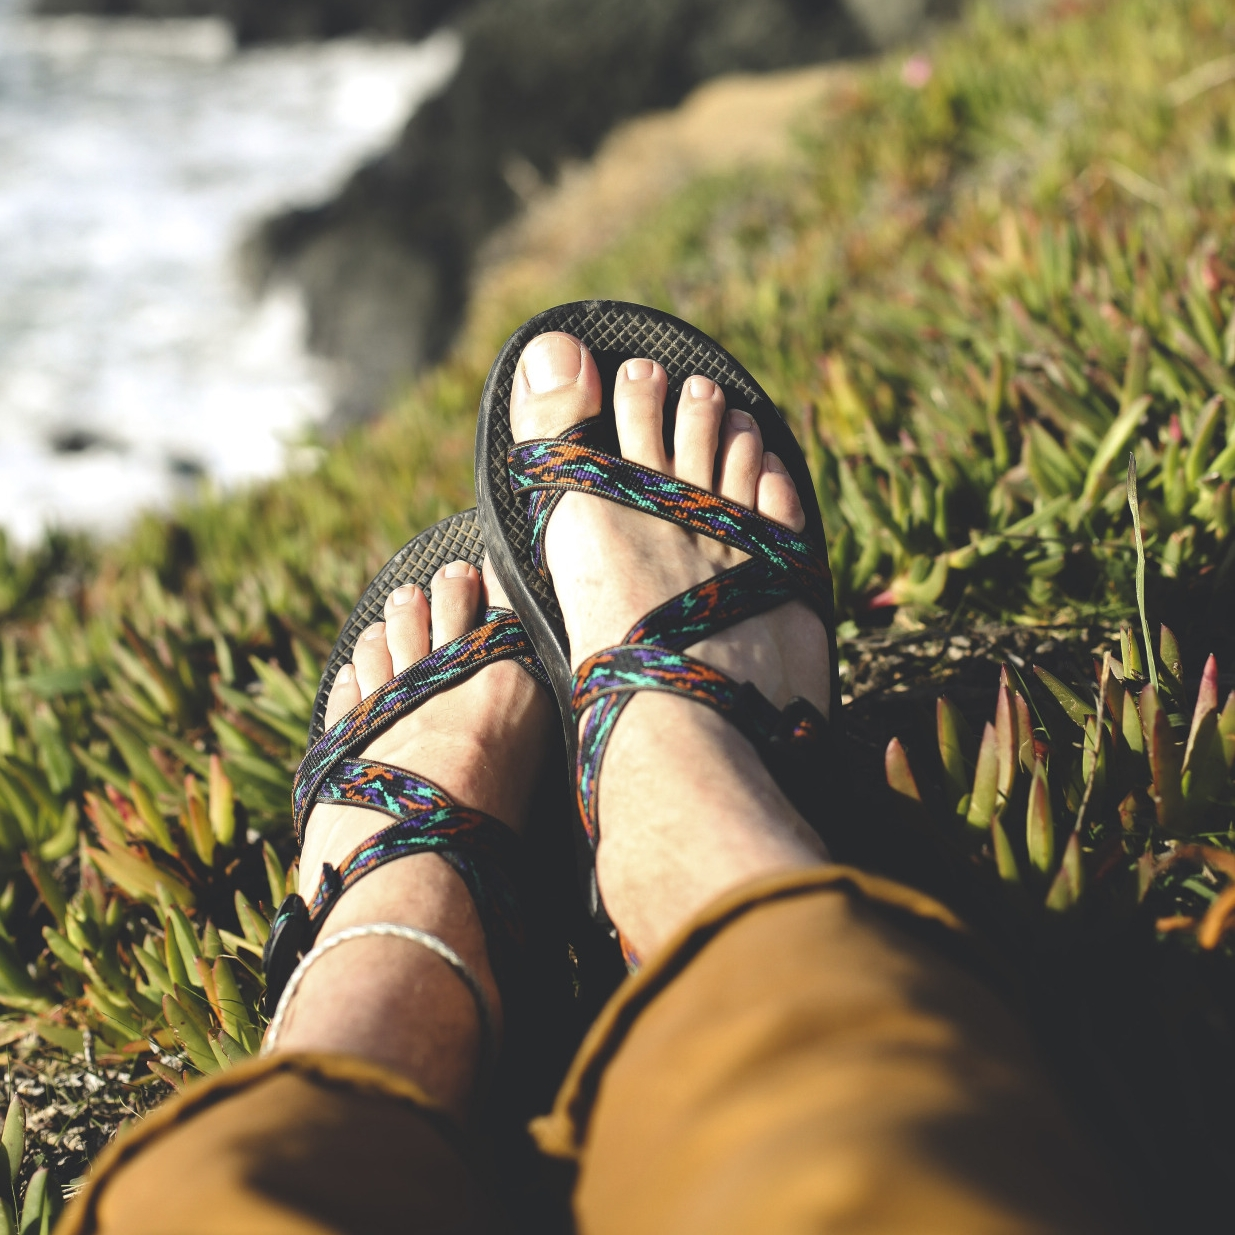 See that Z? - The Z Sandal is iconic among outdoor enthusiasts, named for the